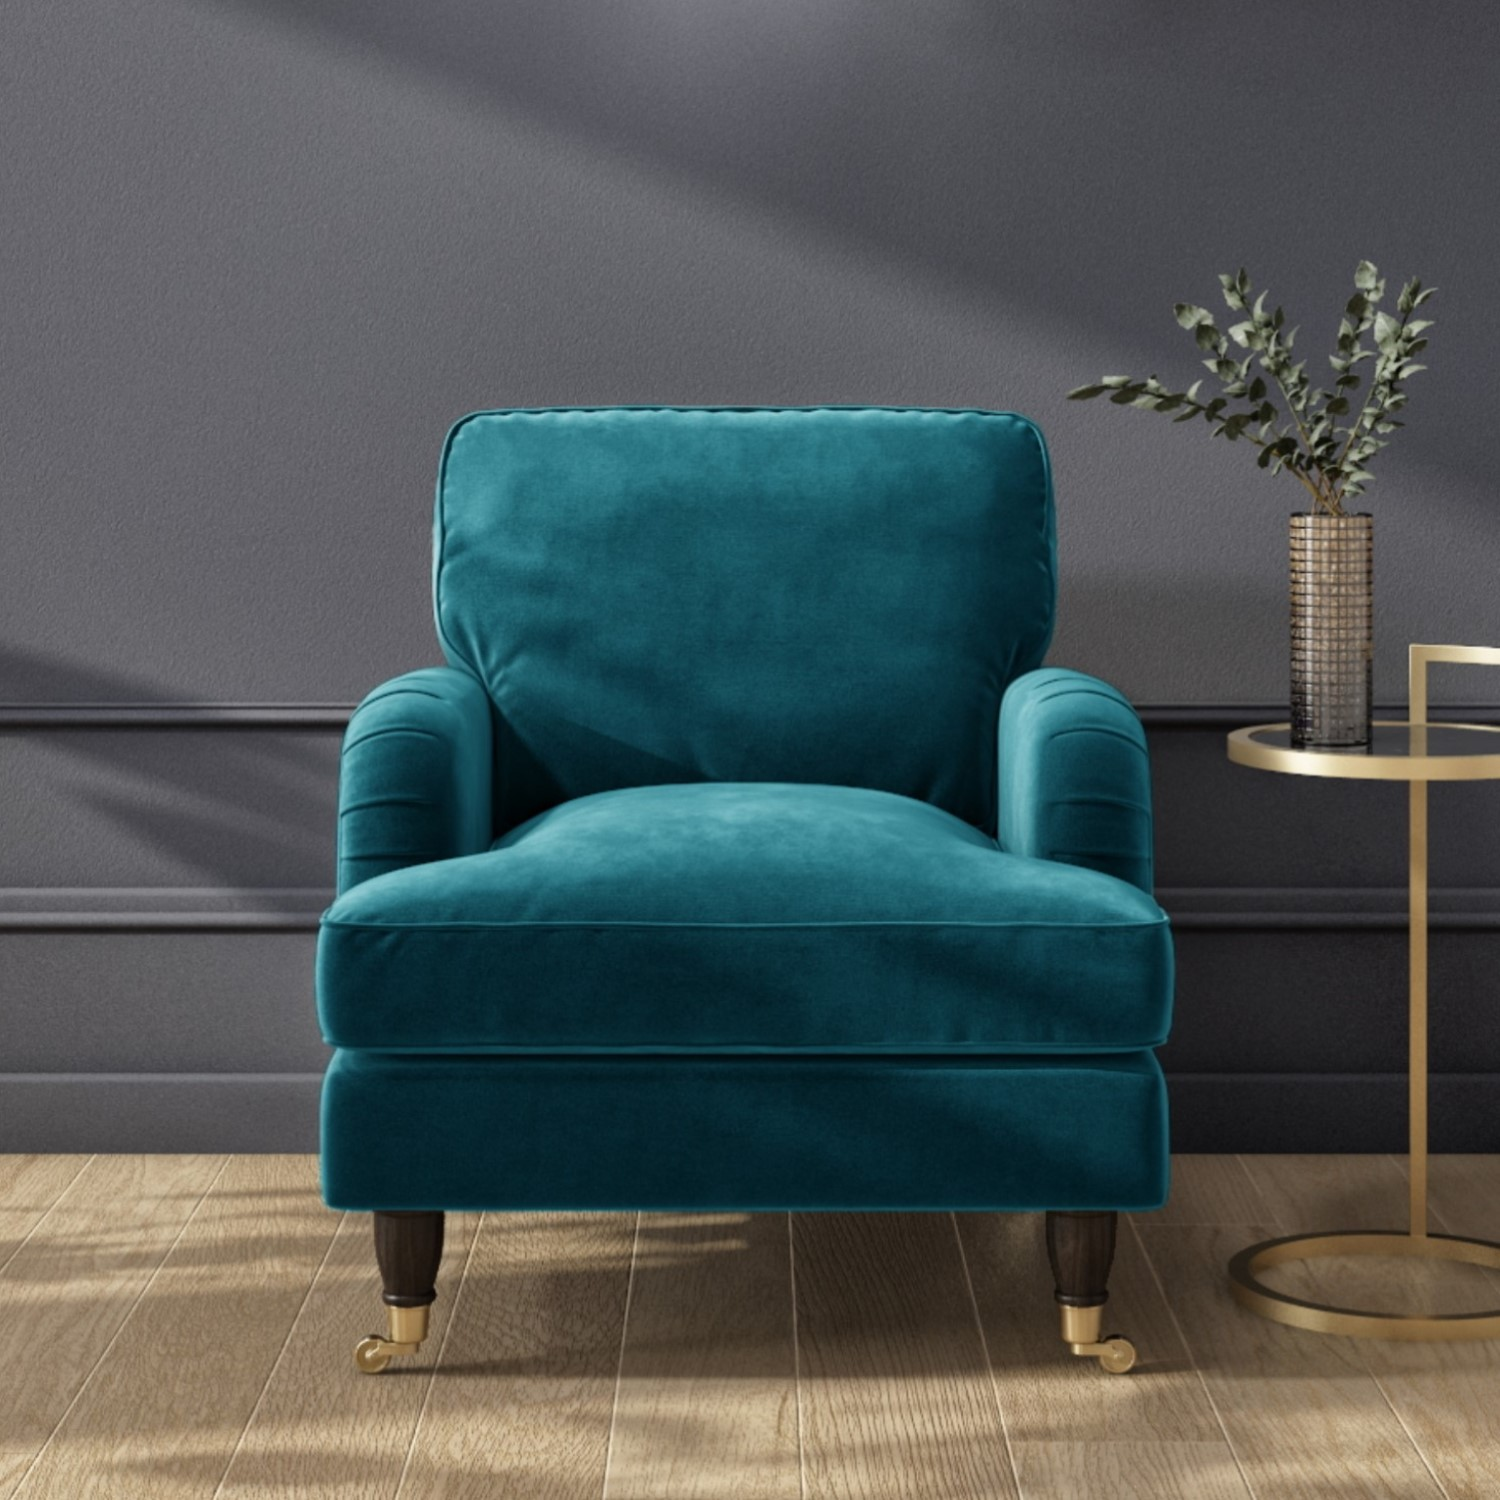 Teal Blue Velvet Armchair - Payton PAY001 | eBay